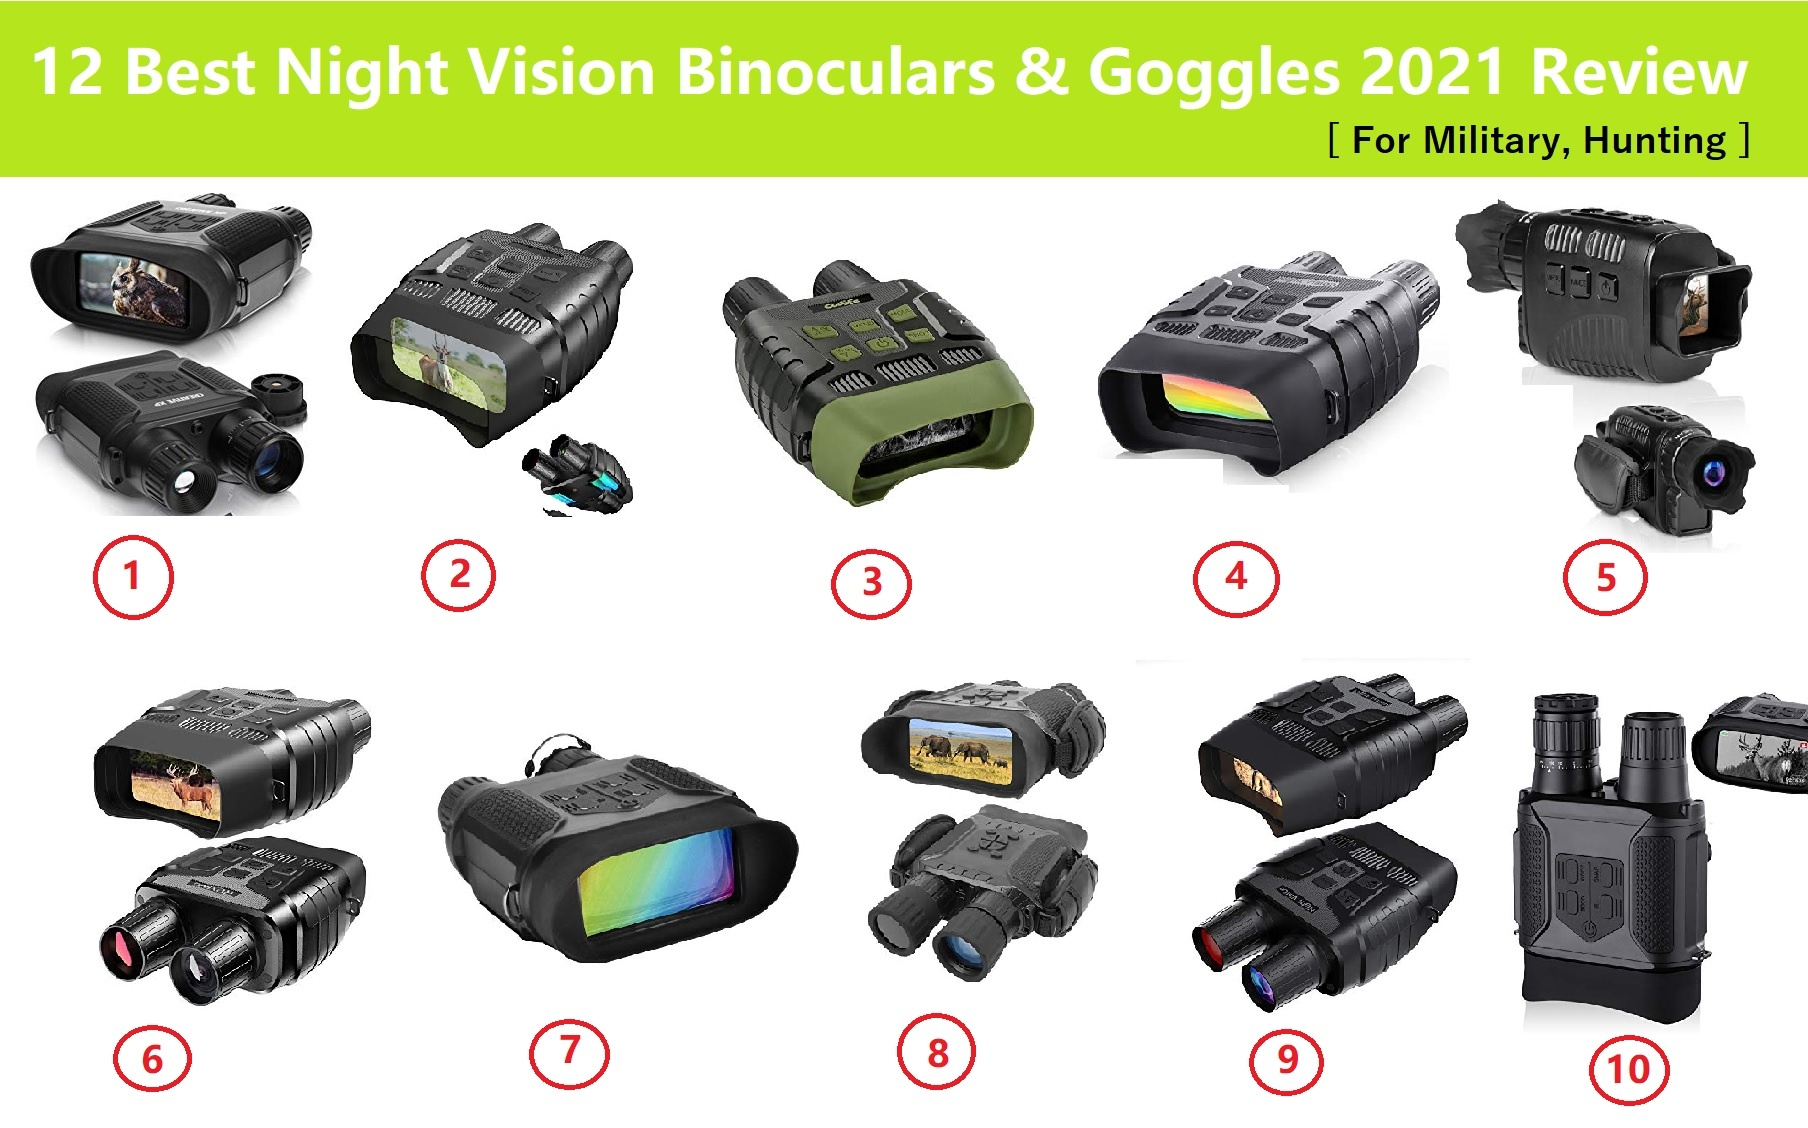 12 Best Night Vision Binoculars & Goggles 2021 Review: For Military, Hunting